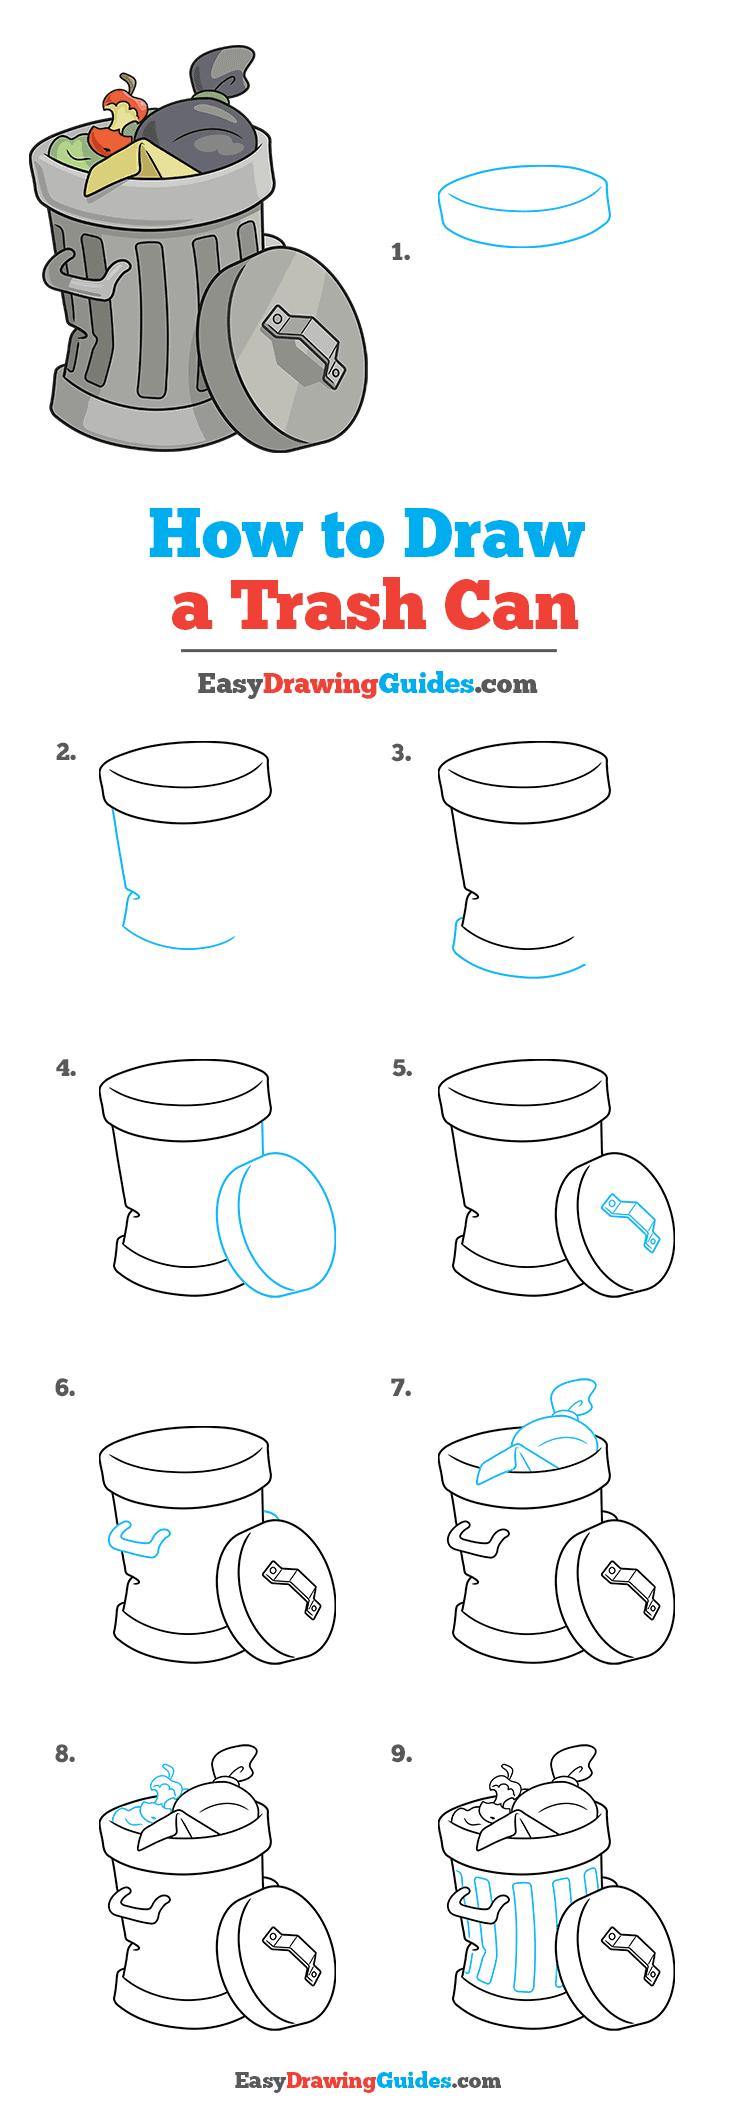 How to Draw Trash Can